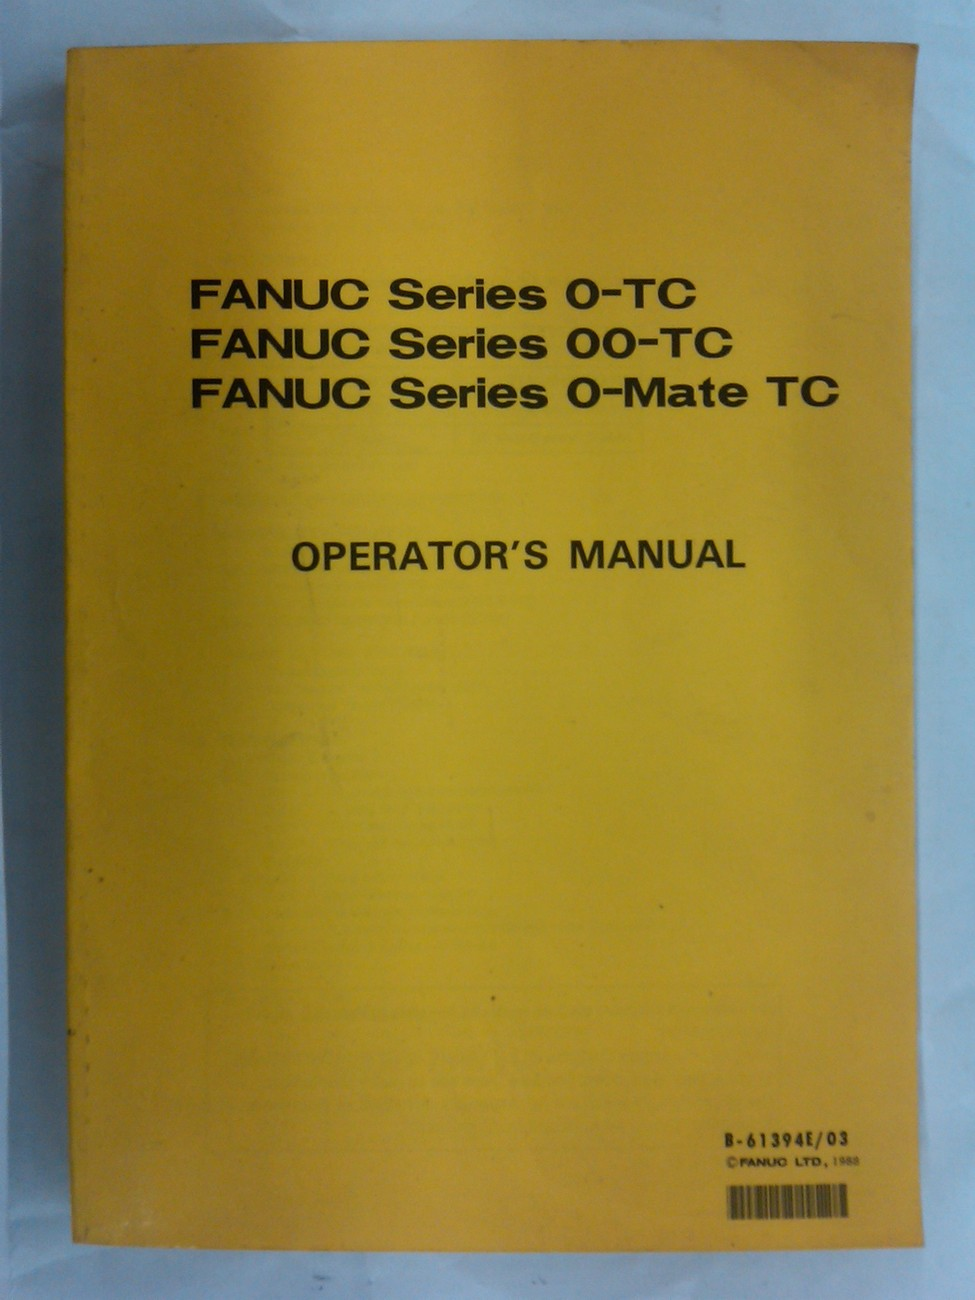 Fanuc Series 0-TC Operator's Manual